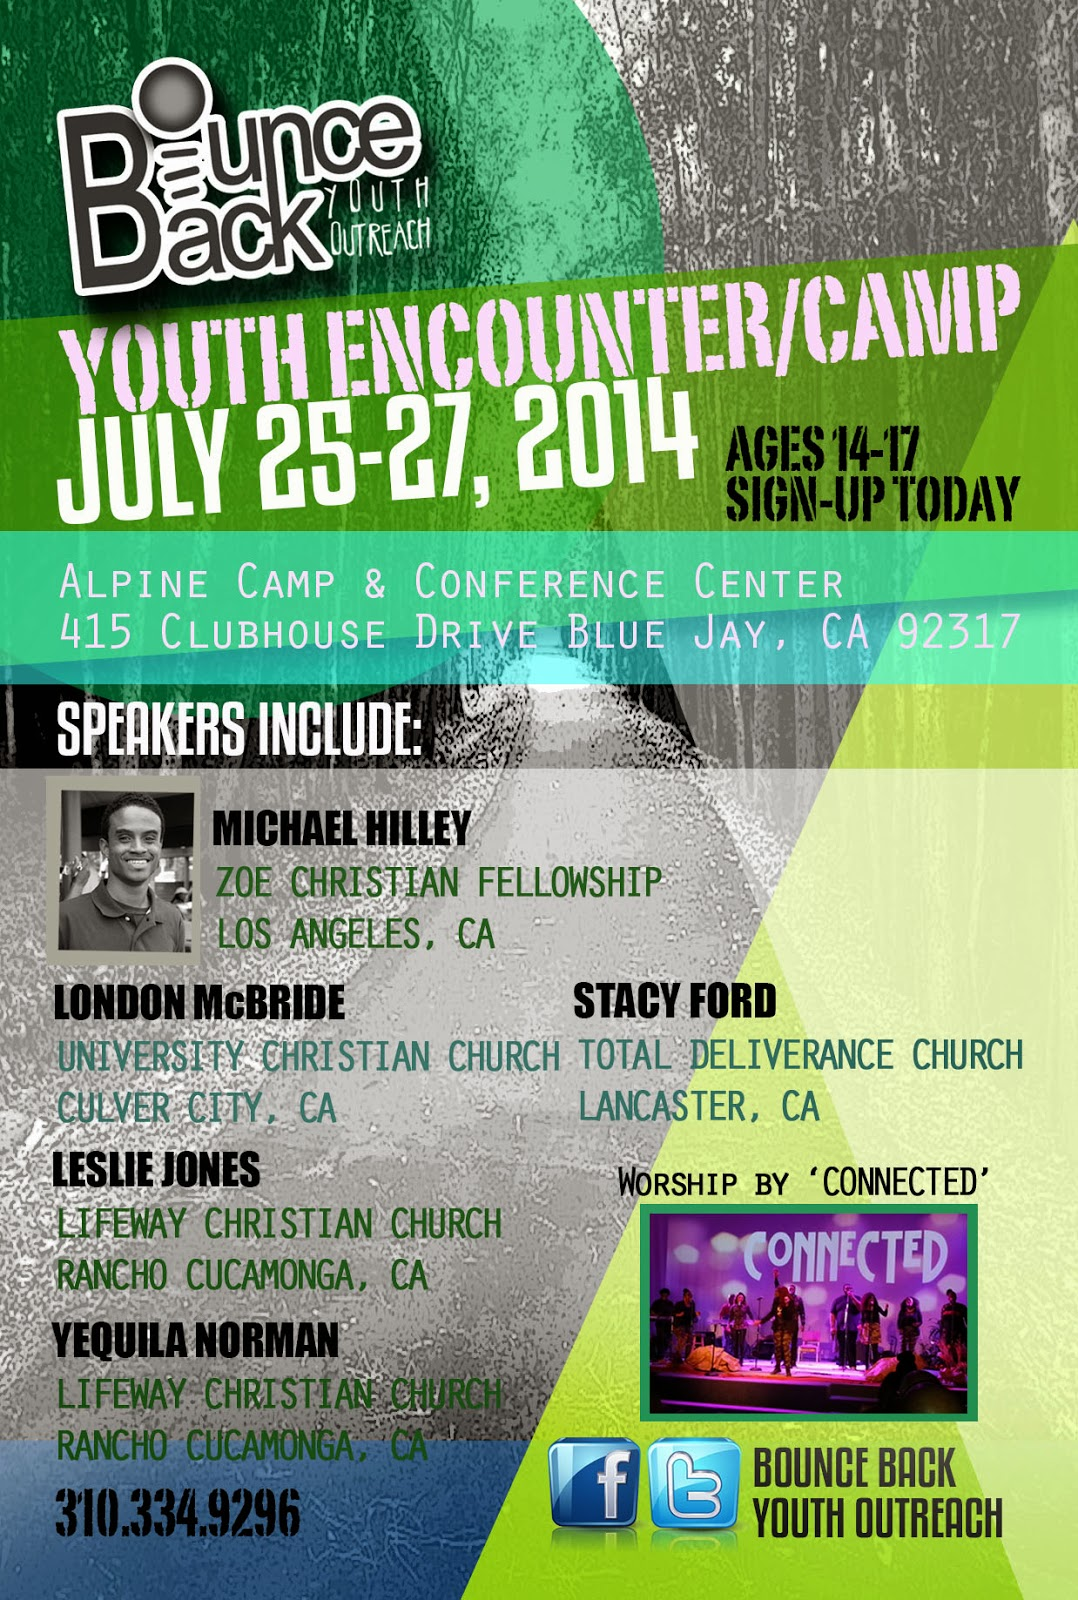 flyer design bounce back youth outreach visionheir graphics